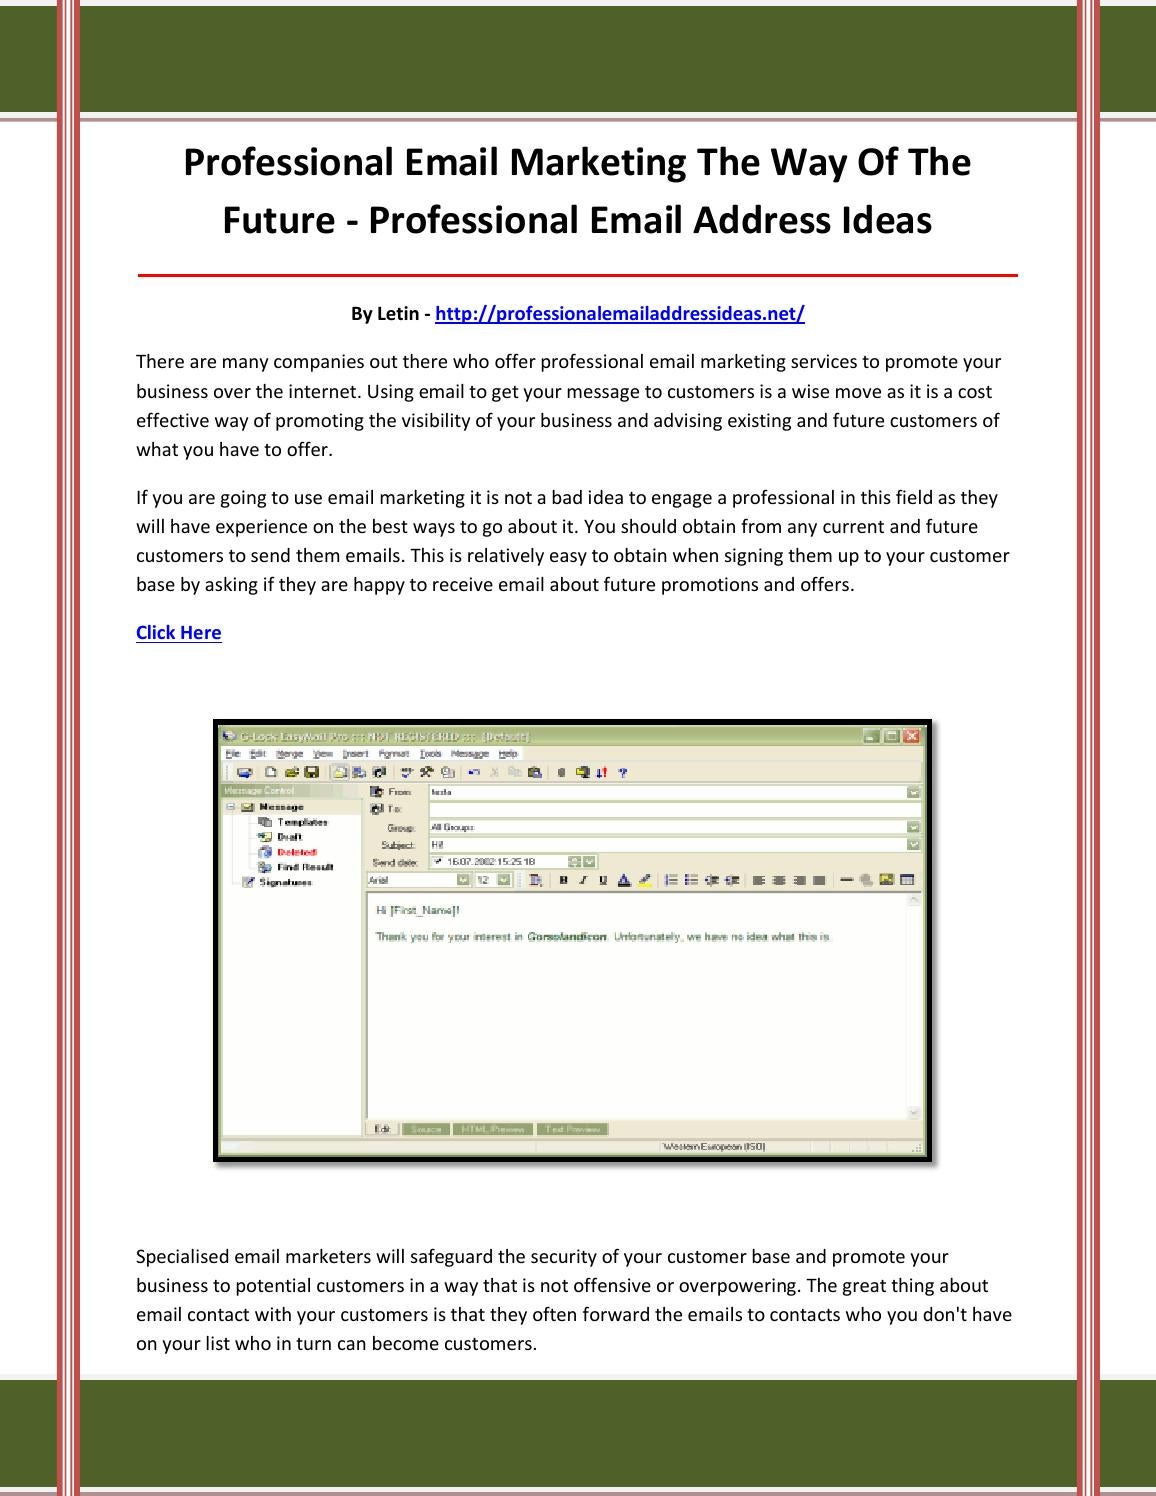 professional email address ideas by adsfcvdgfbvhfgvvjf - issuu